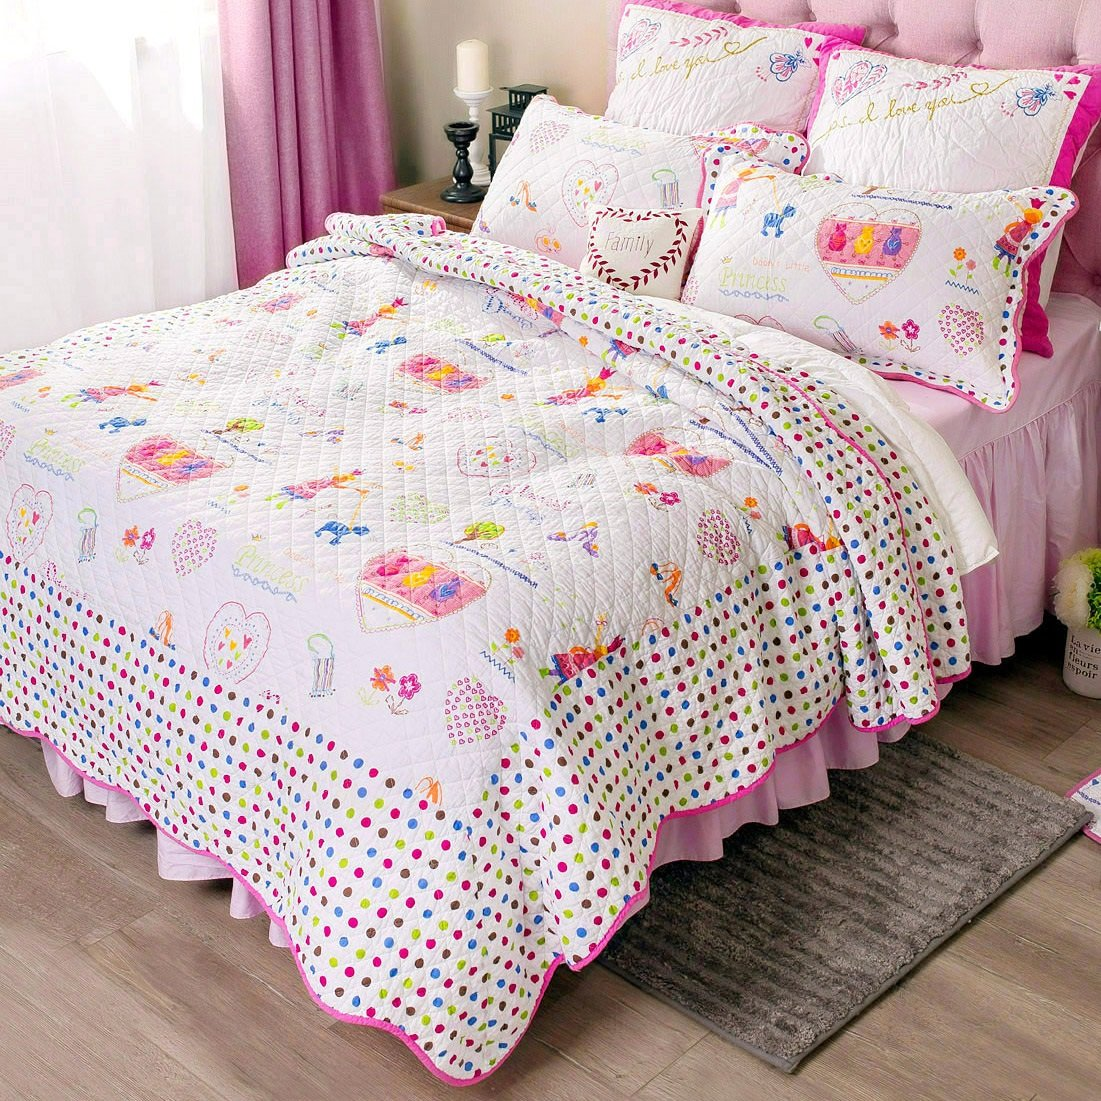 White and Pink Girls Comforter Set Kids Cartoon Bed Quilt Set